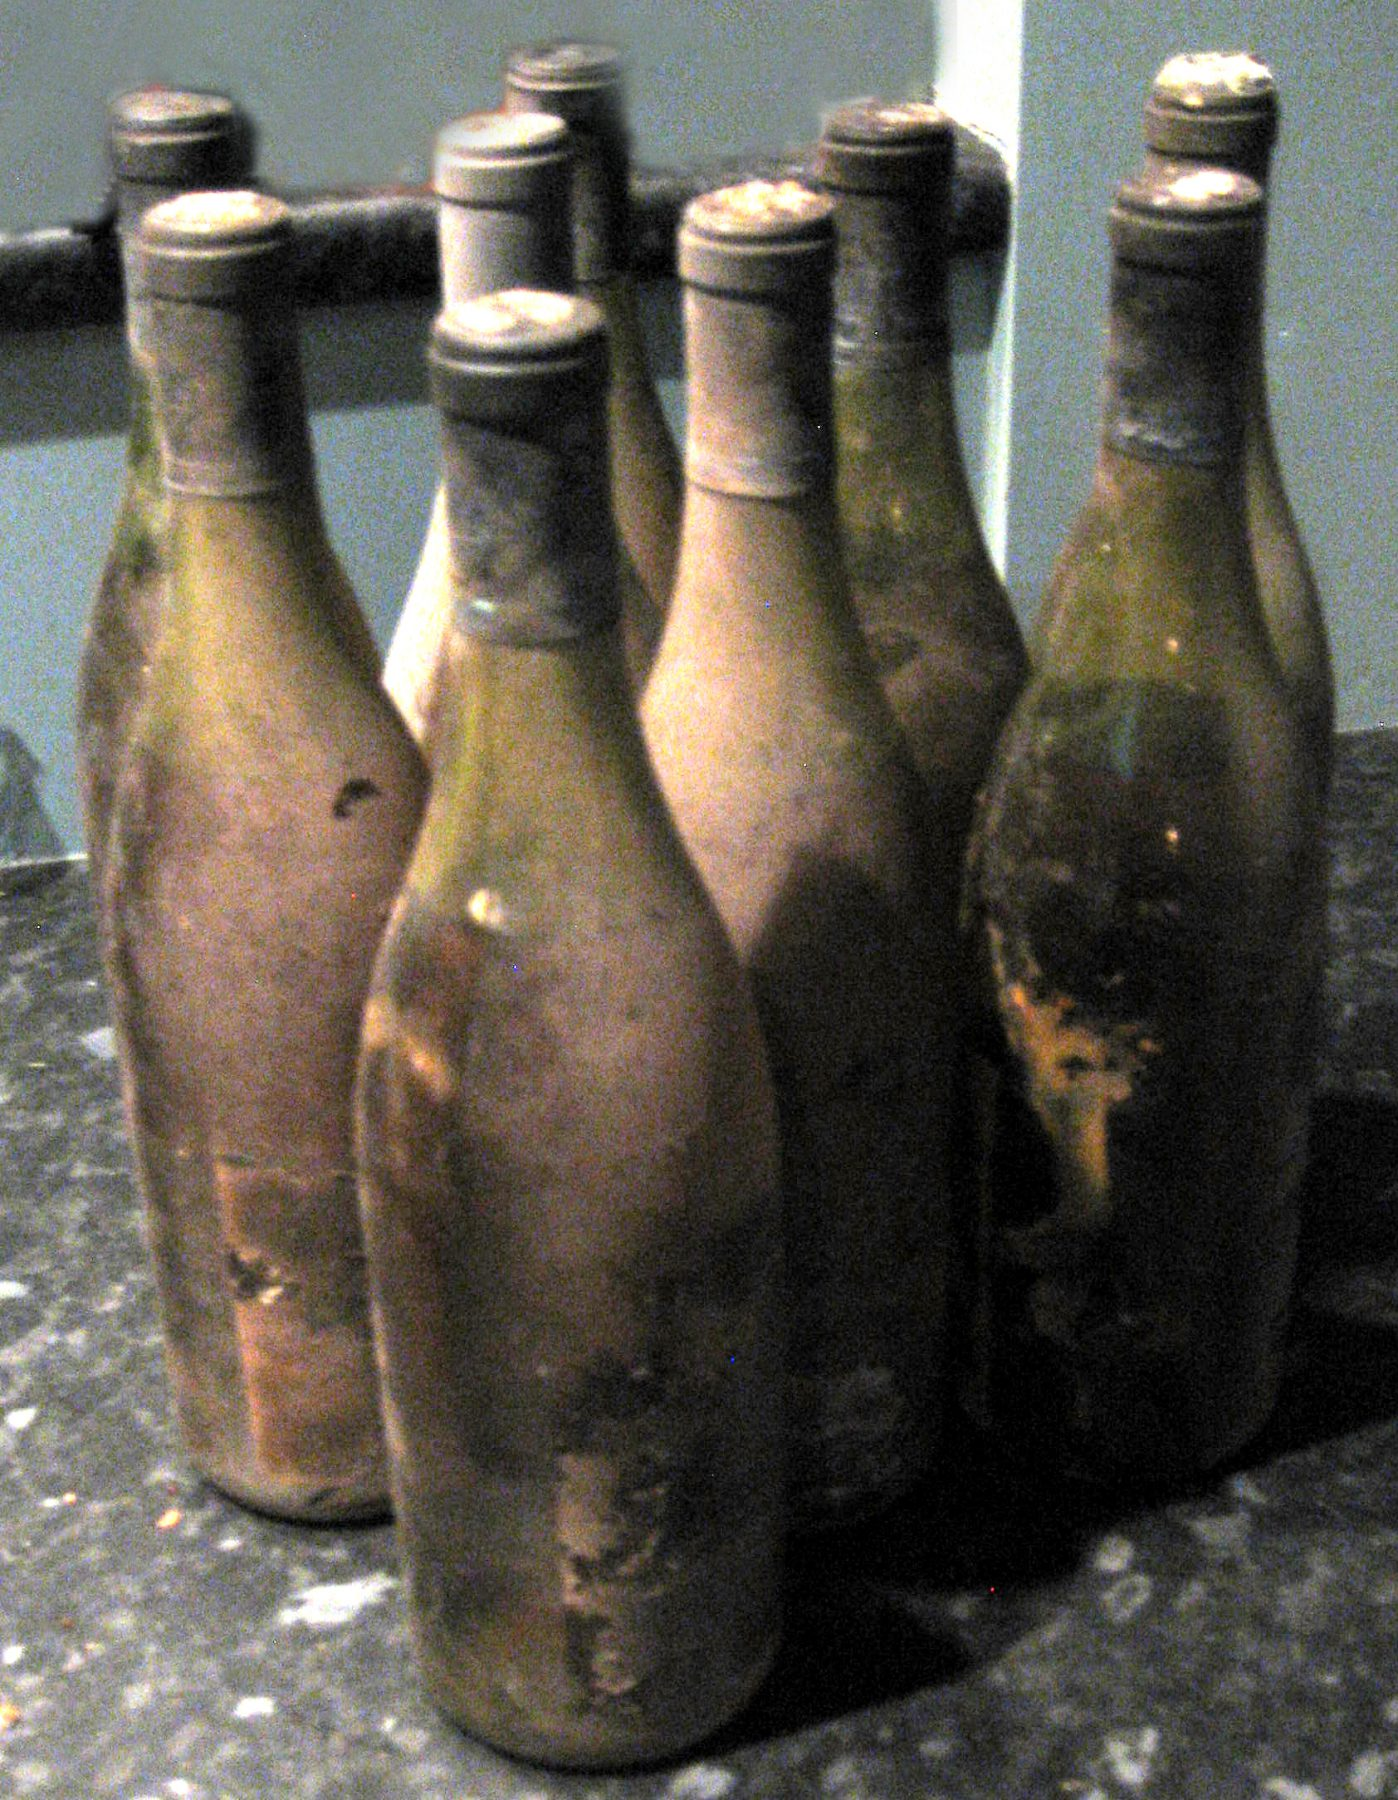 aged bottles from my wine cellar